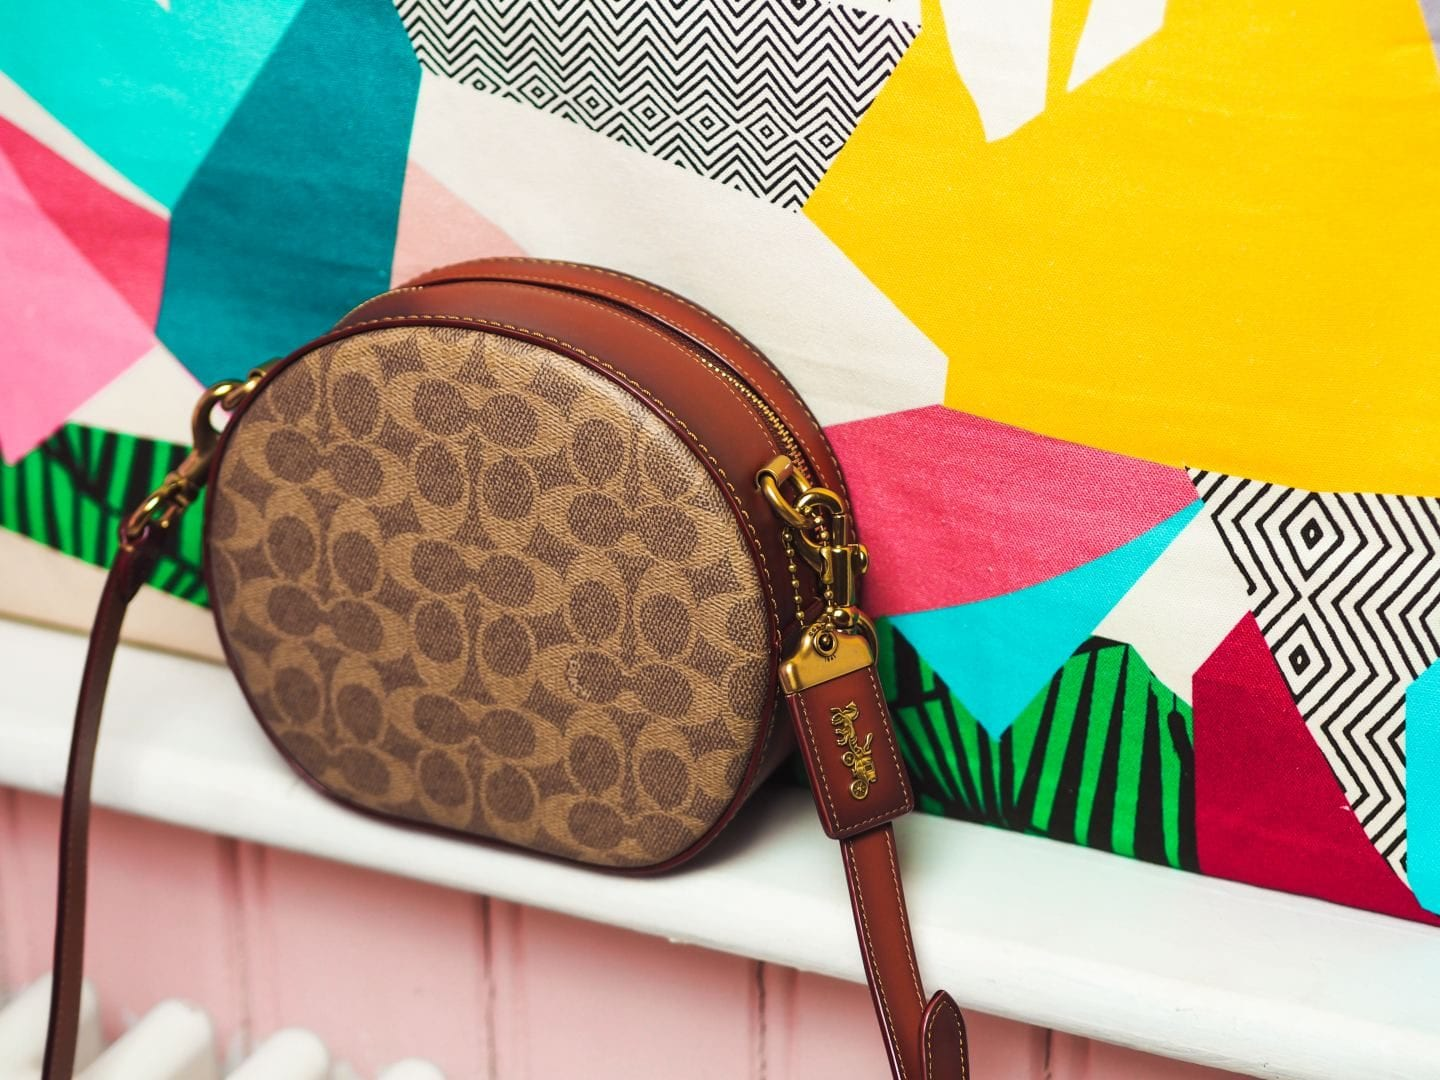 coach canteen crossbody round handbag in signature canvas bag bag review monogram coated canvas worth the price?